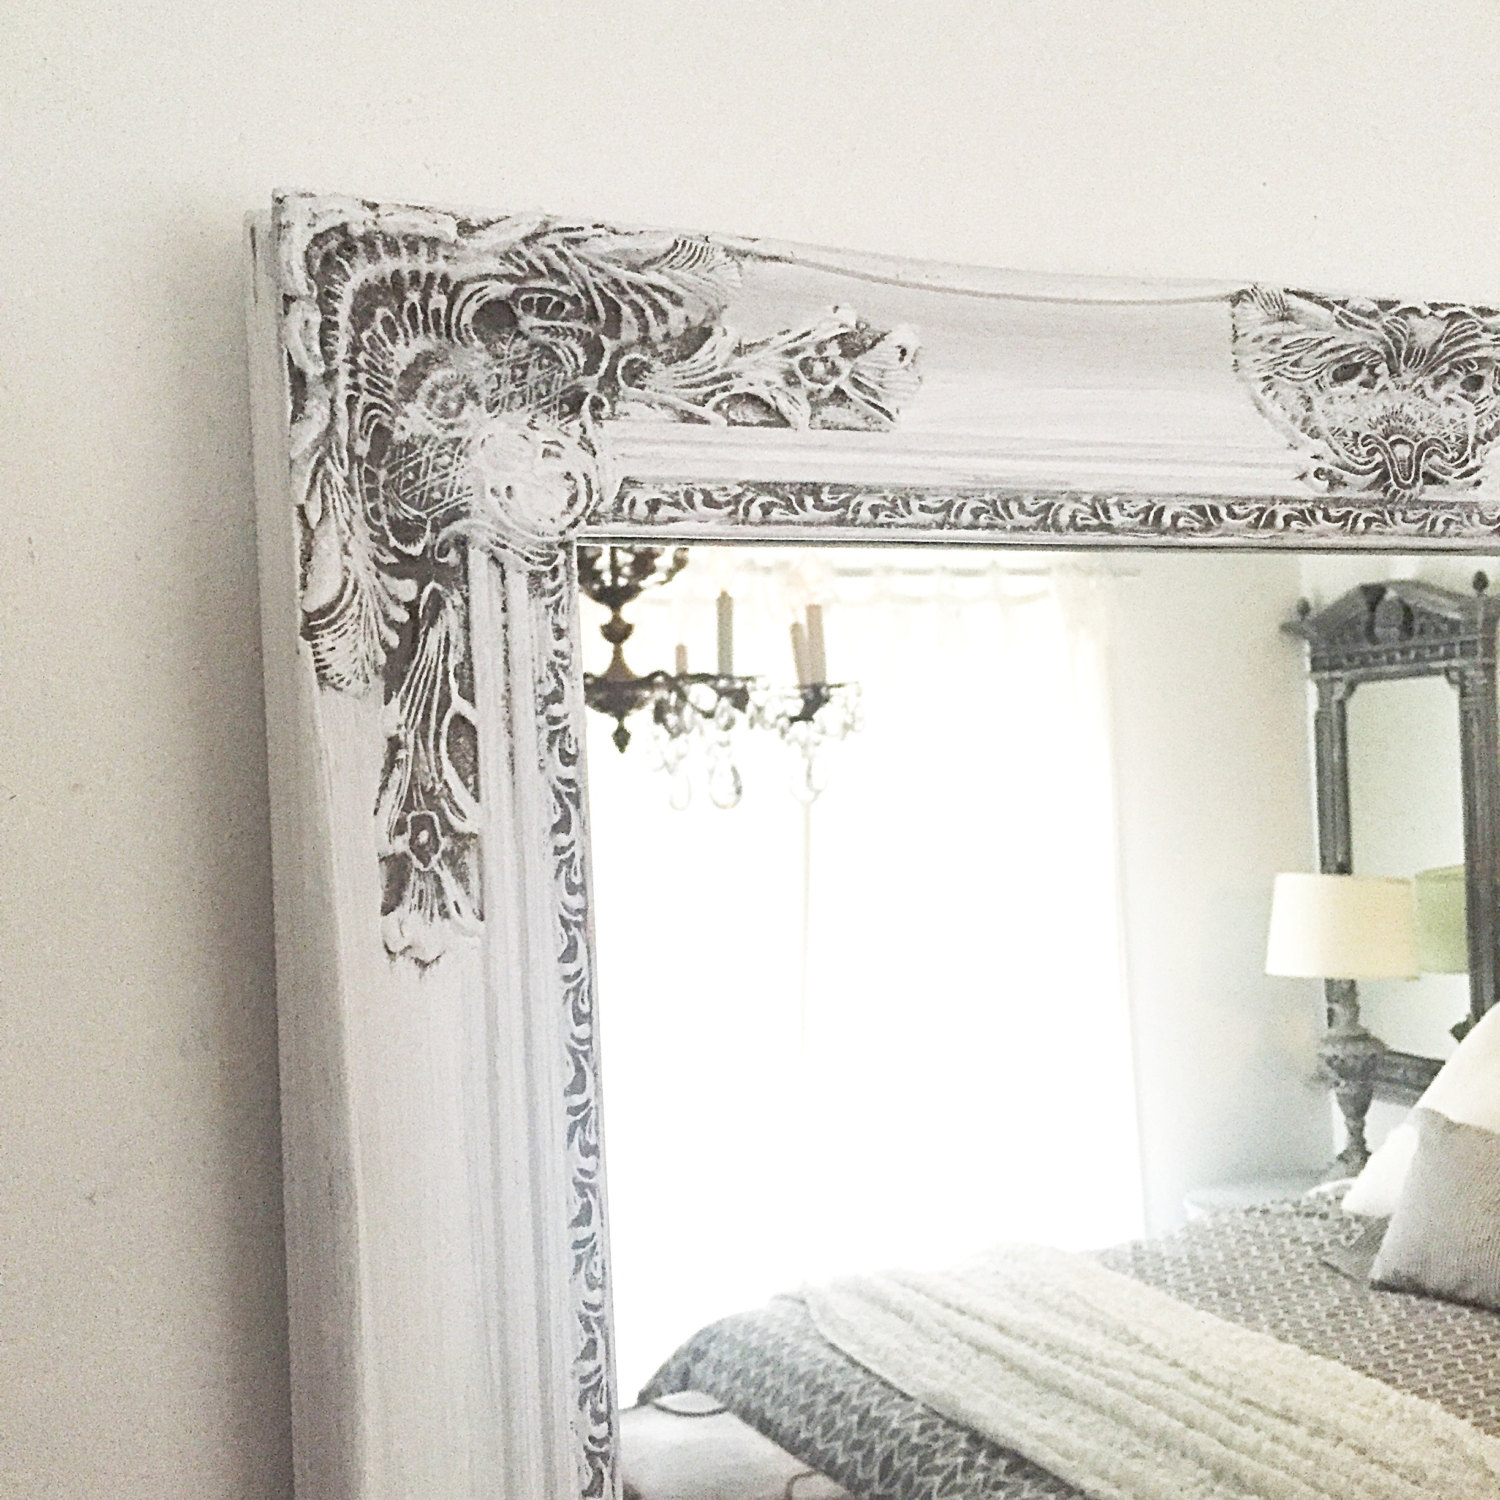 15 photos shabby chic mirrors for sale mirror ideas. Black Bedroom Furniture Sets. Home Design Ideas